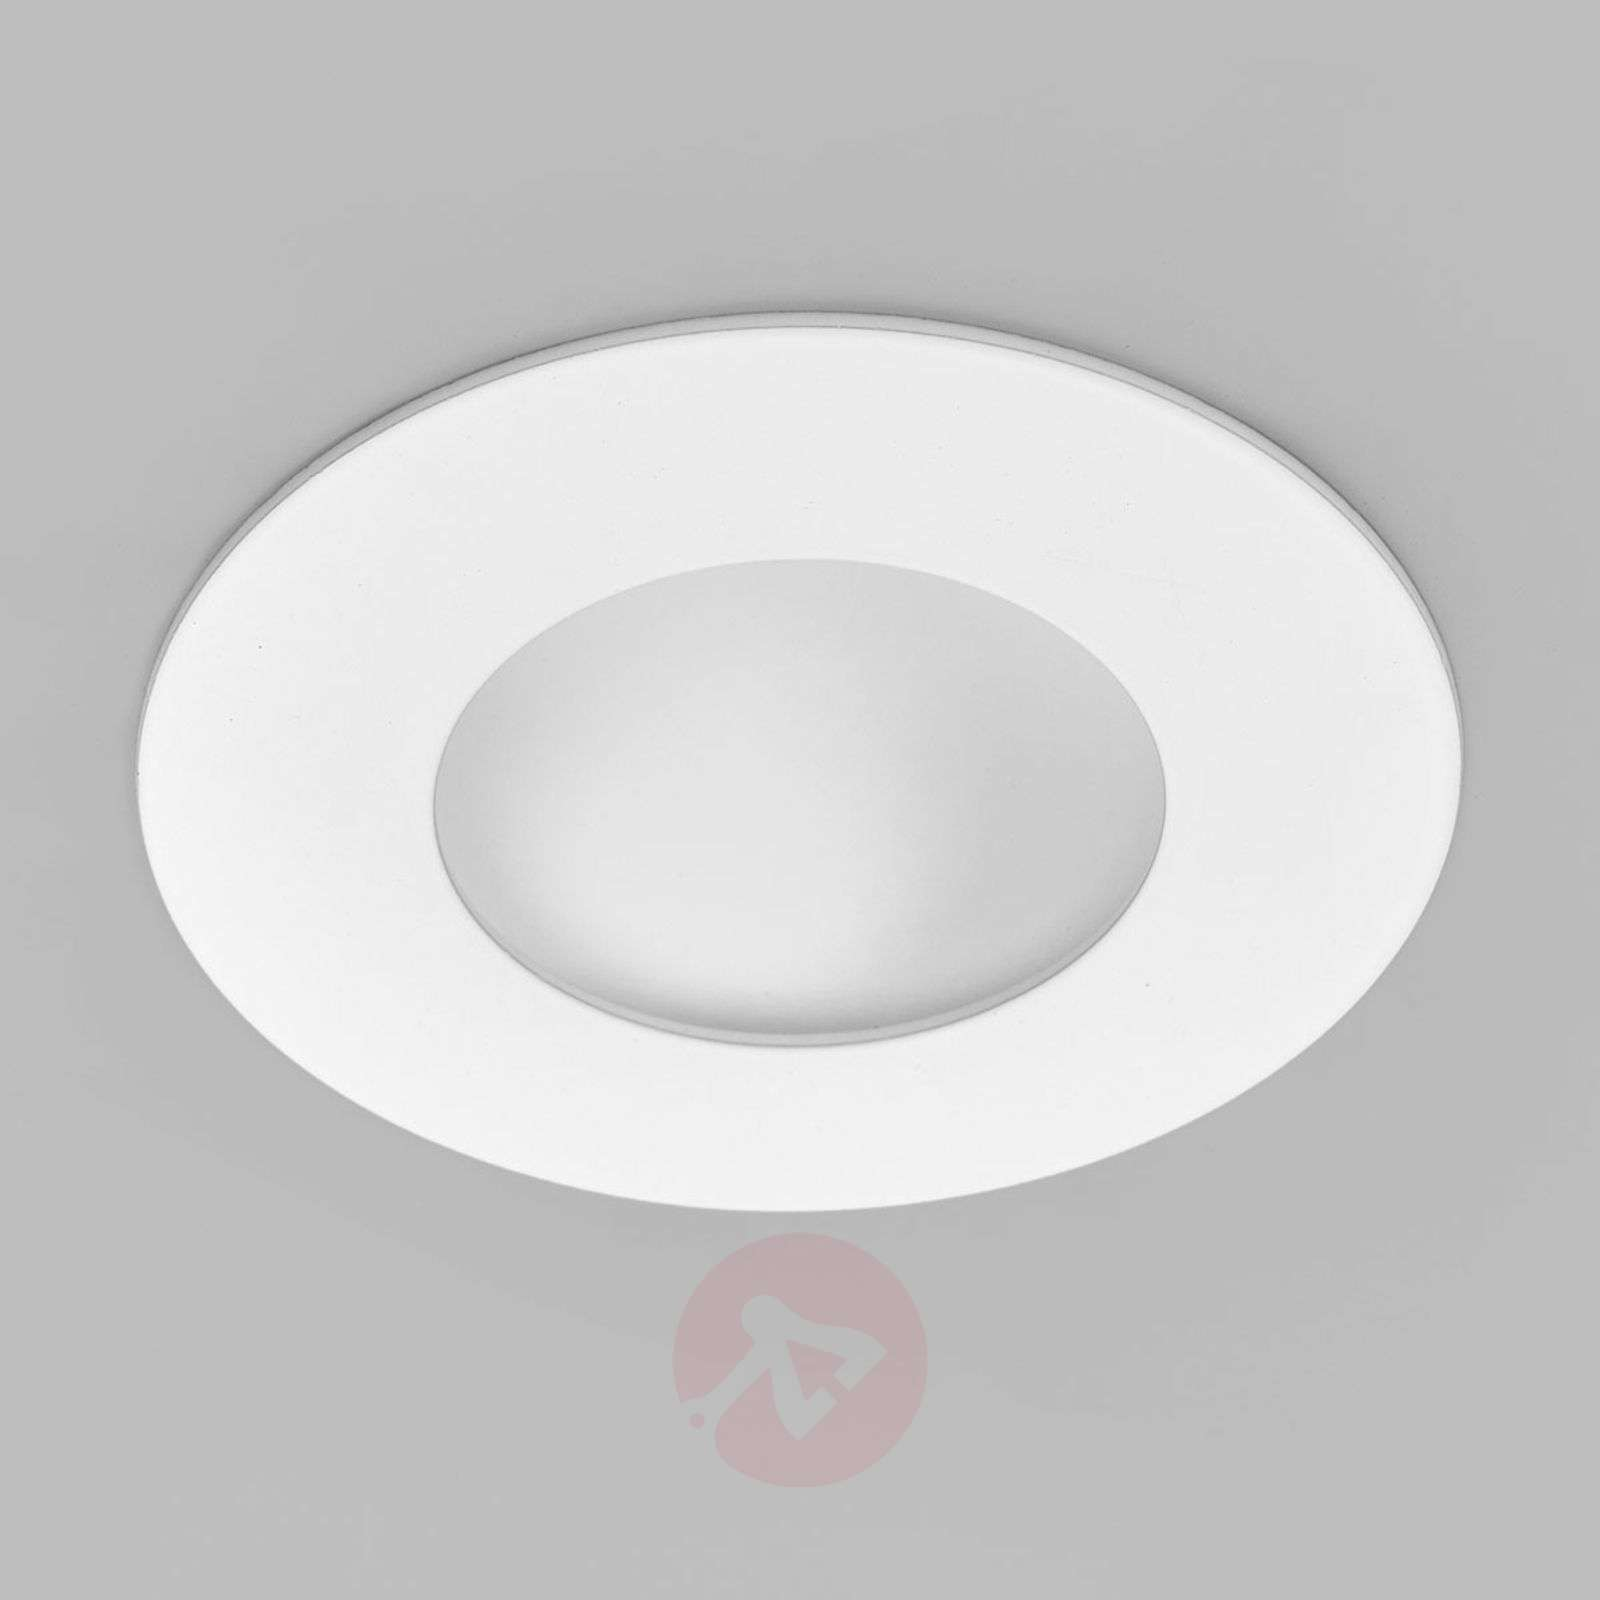 Set of 3 Orbita LED recessed lights, warm white-3057045-01